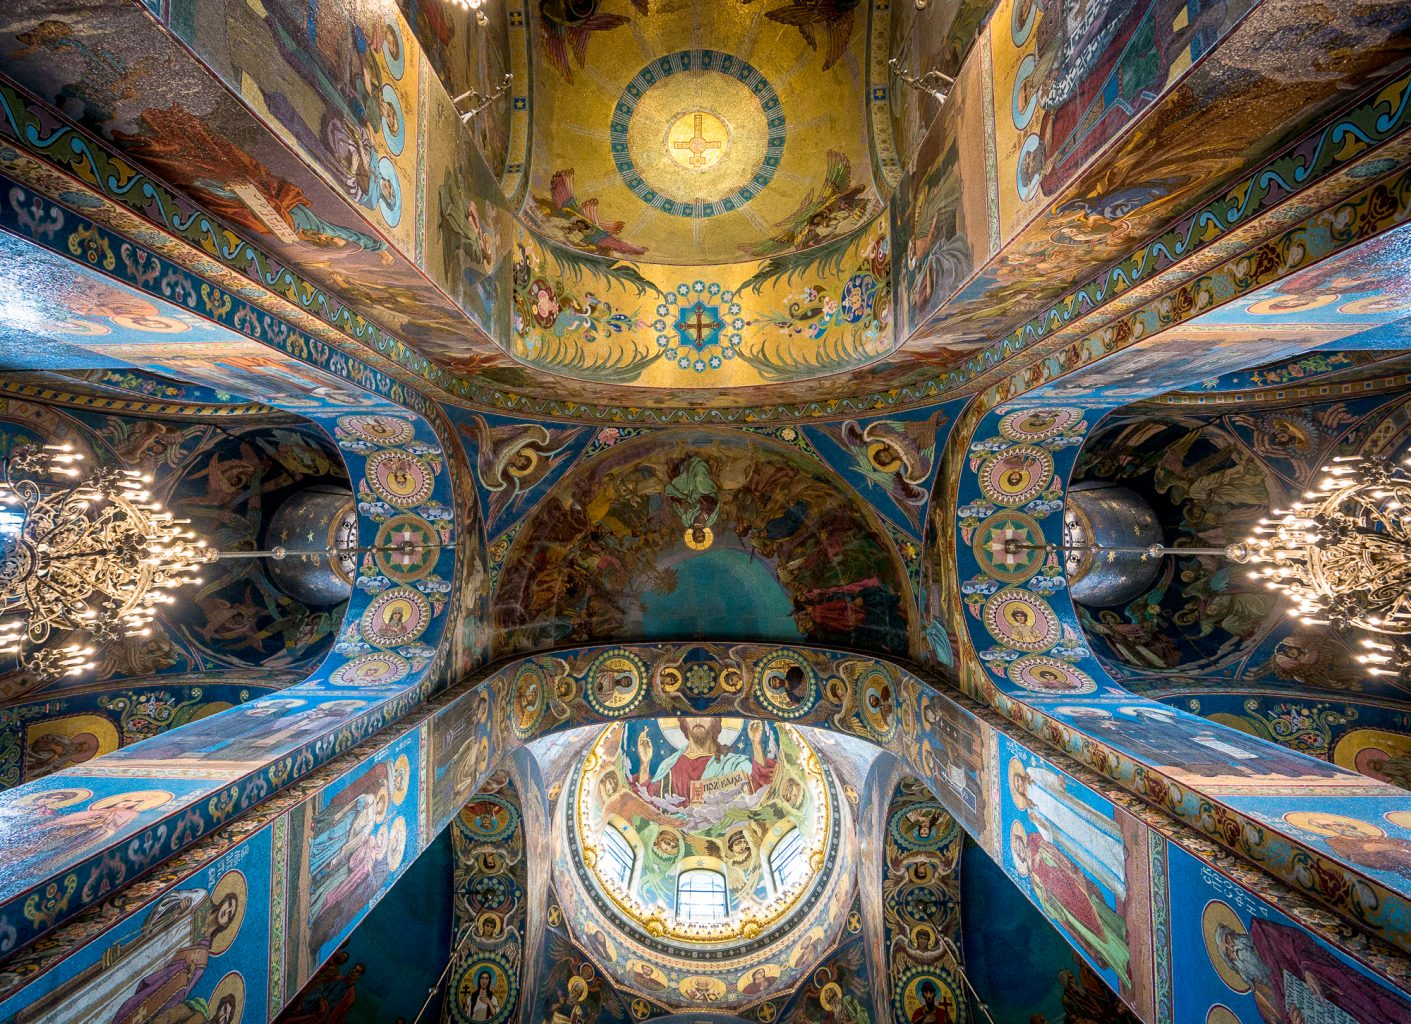 Church of the Savior on Spilled Blood ceiling looking directly up